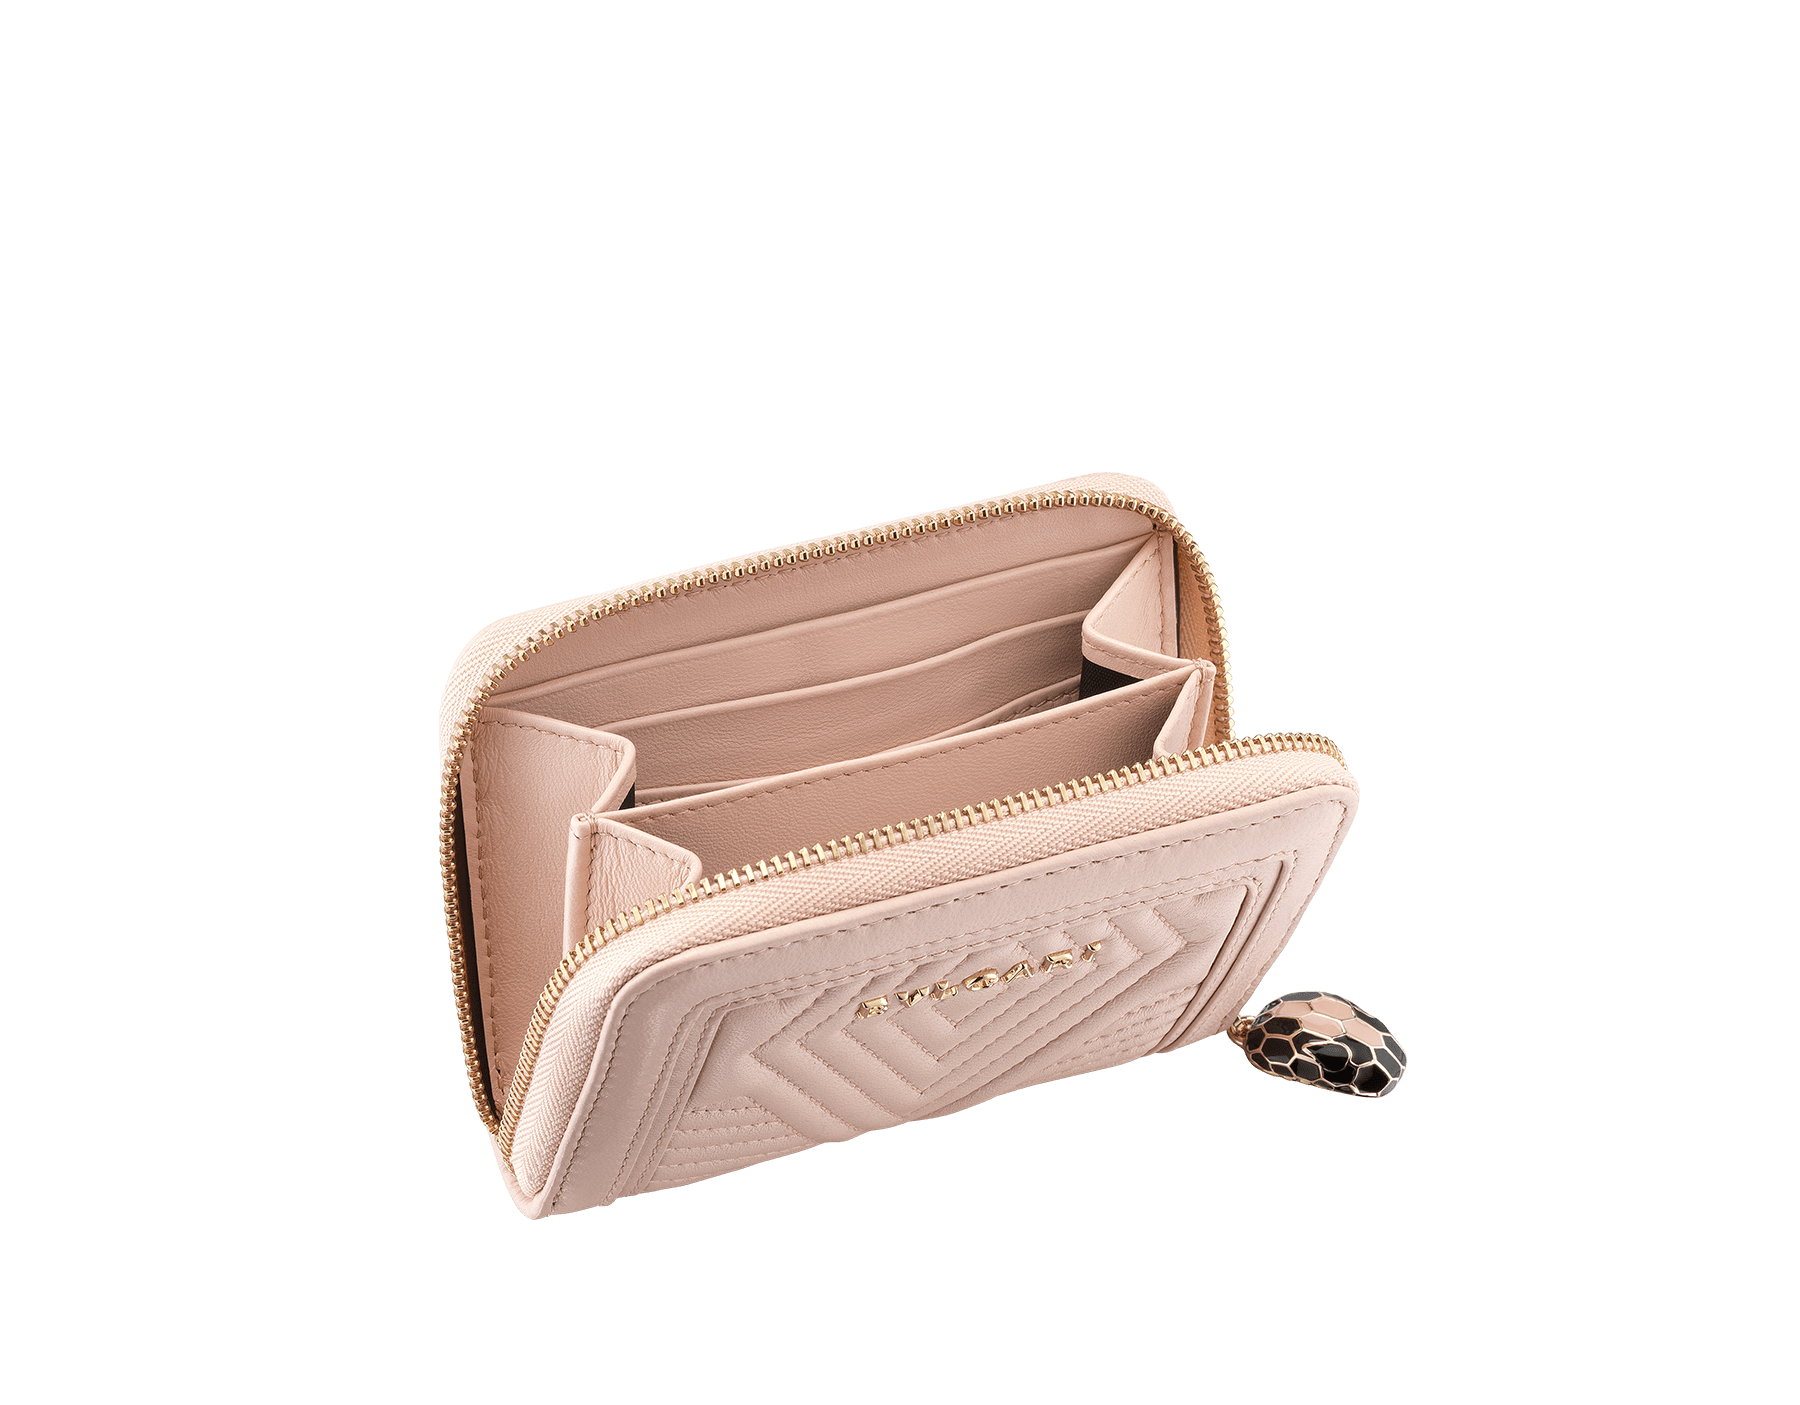 Serpenti Diamond Blast mini zipped wallet in crystal rose quilted nappa leather. Iconic snakehead zip puller in black and white enamel, with black enamel eyes 287589 image 2